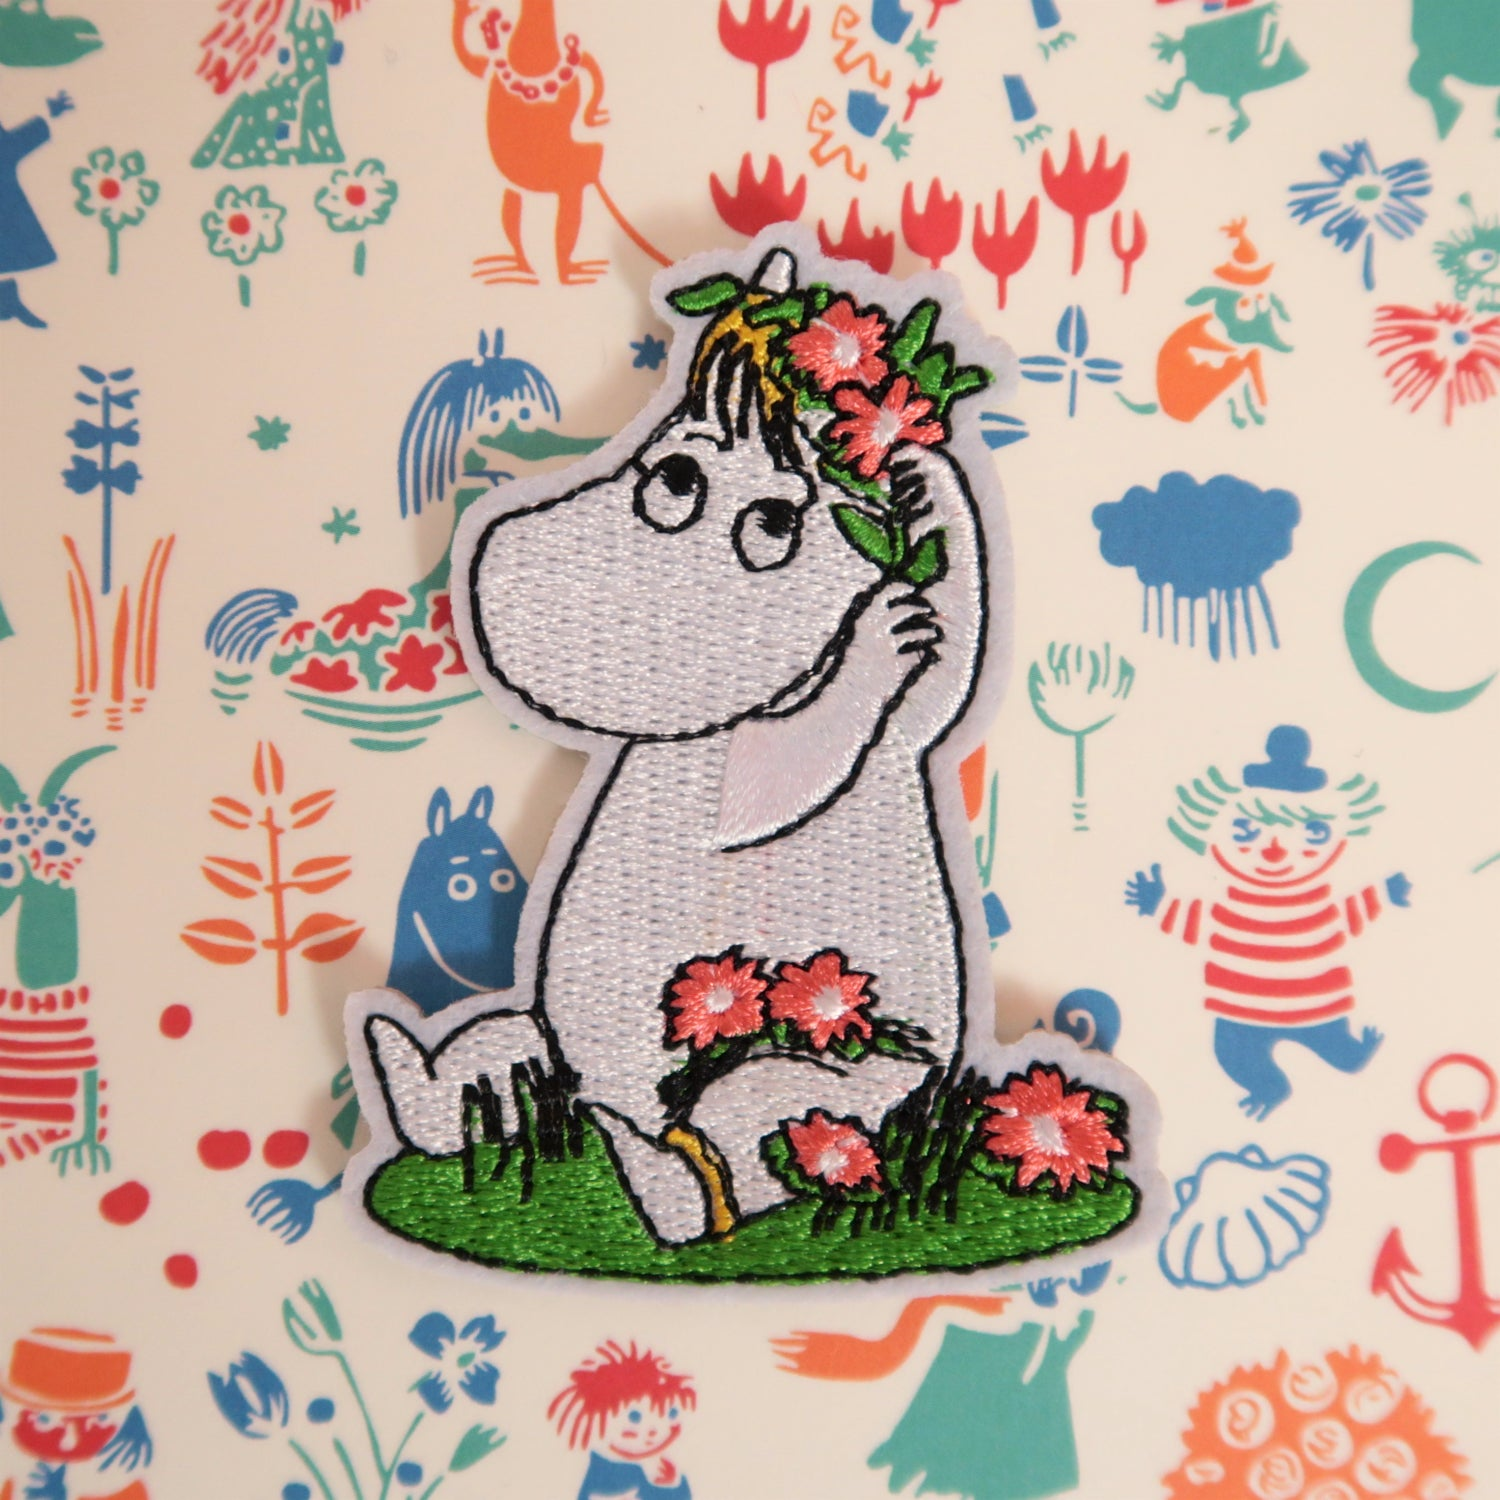 Flower Crown Moomin Patch - Ice Cream Cake